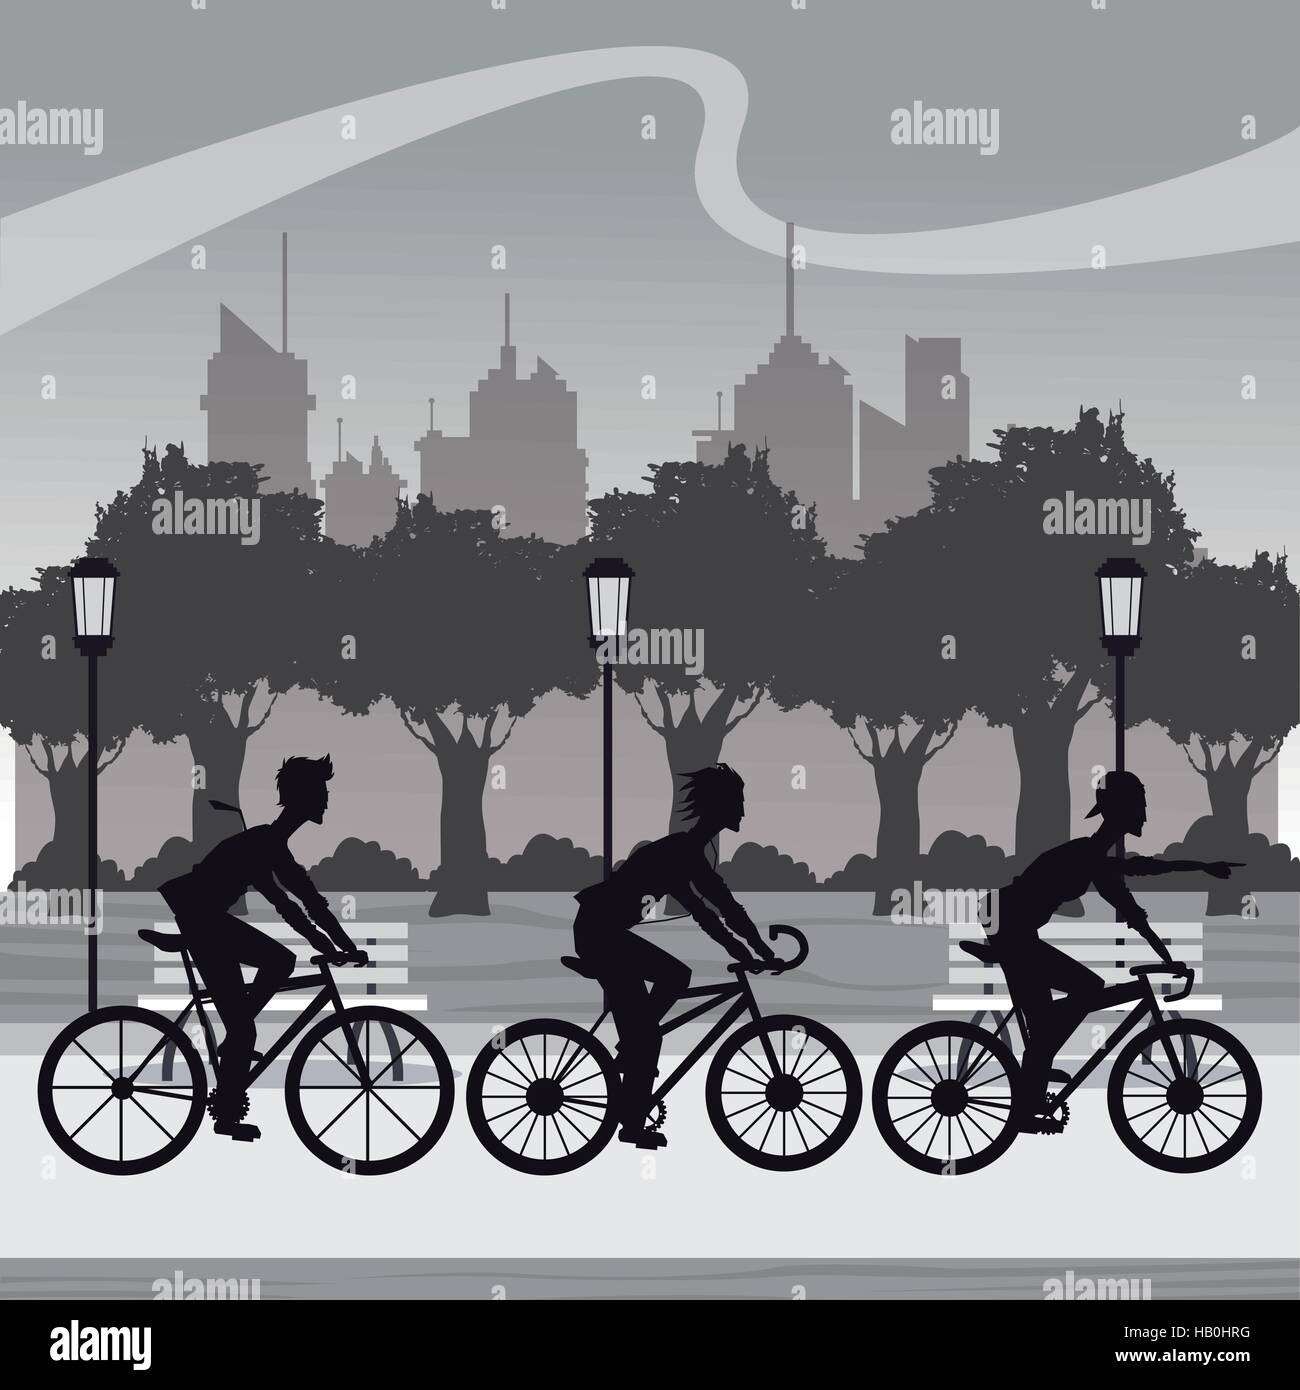 silhouette group younger riding bycicle park city background - Stock Vector